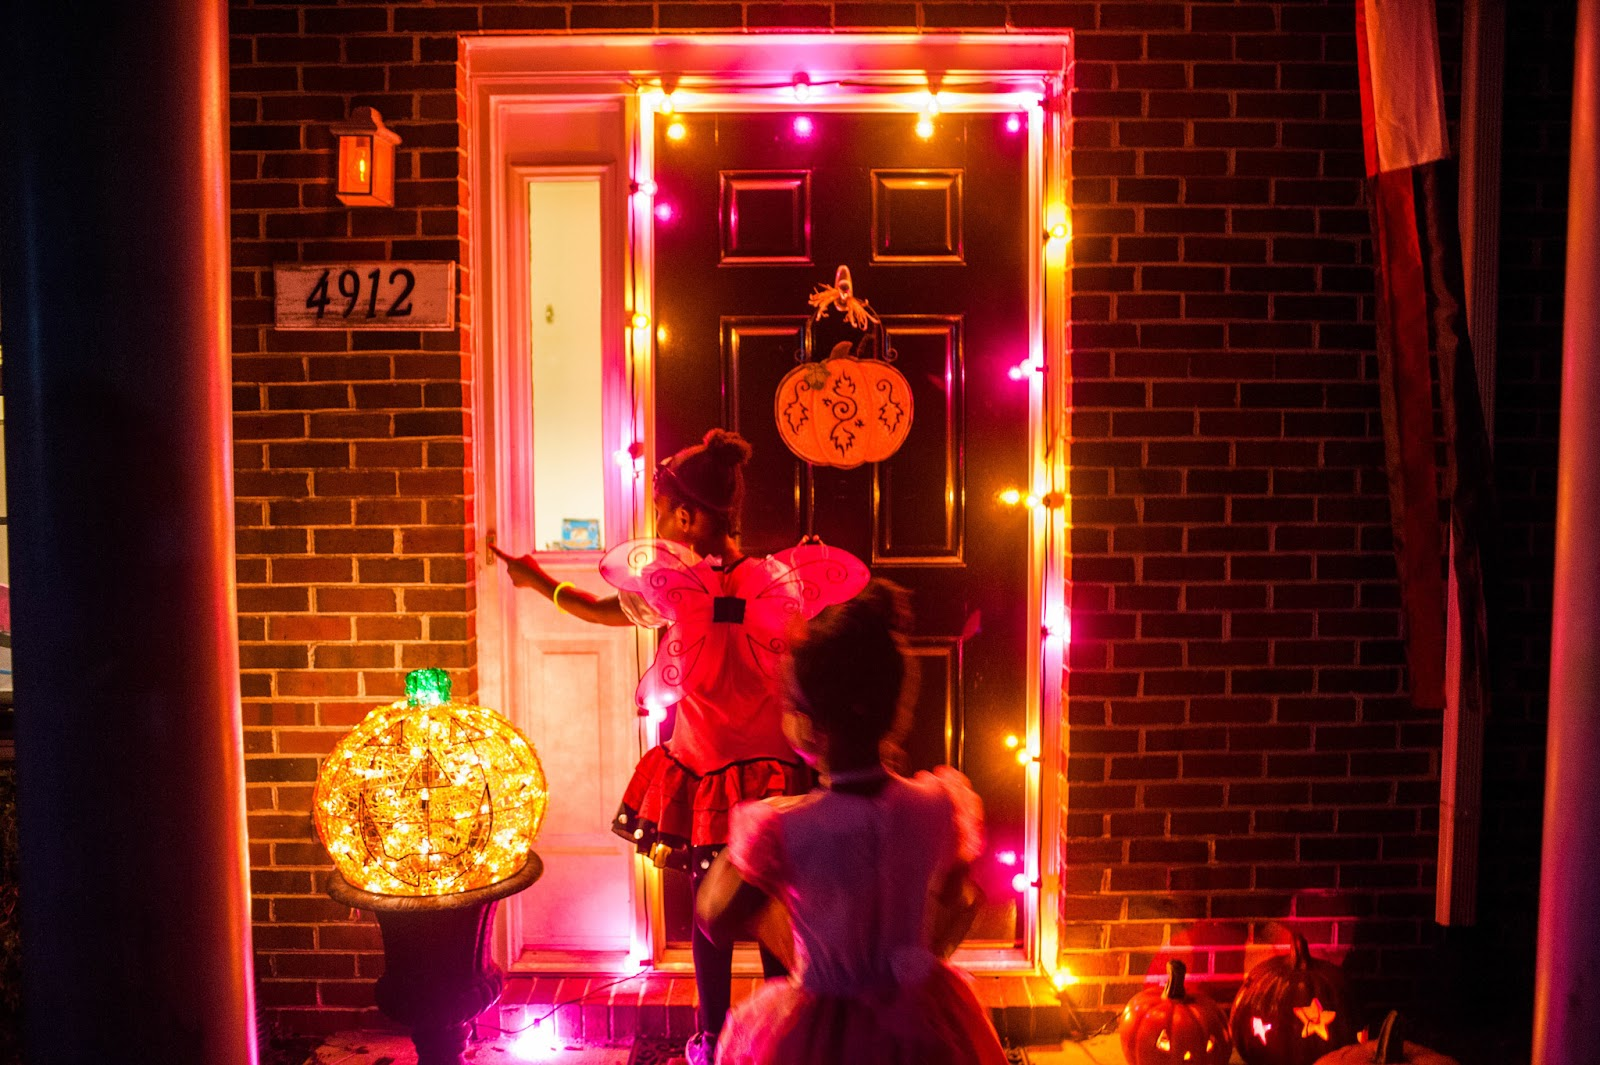 bal-baltimore-named-one-of-the-best-cities-for-trick-or-treating-20161013.jpg